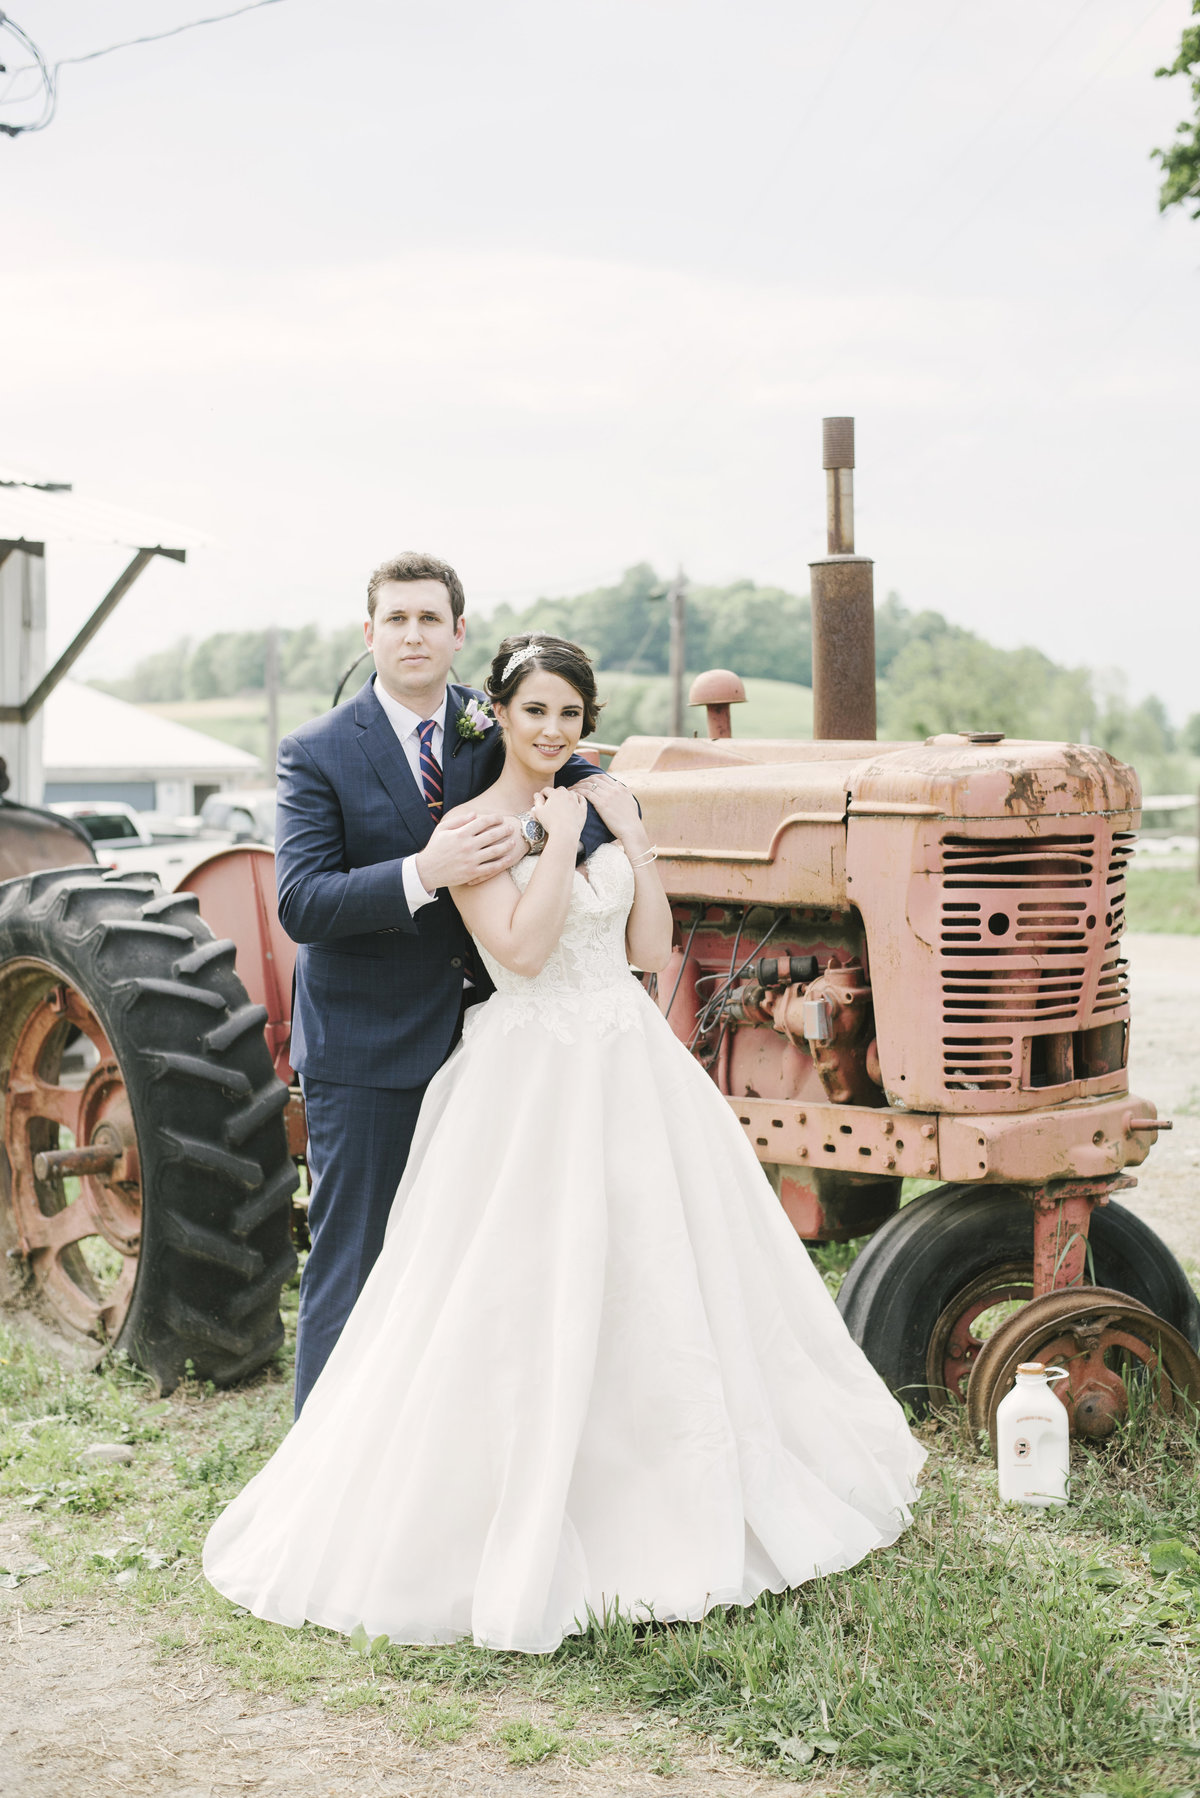 Monica-Relyea-Events-Alicia-King-Photography-Globe-Hill-Ronnybrook-Farm-Hudson-Valley-wedding-shoot-inspiration34